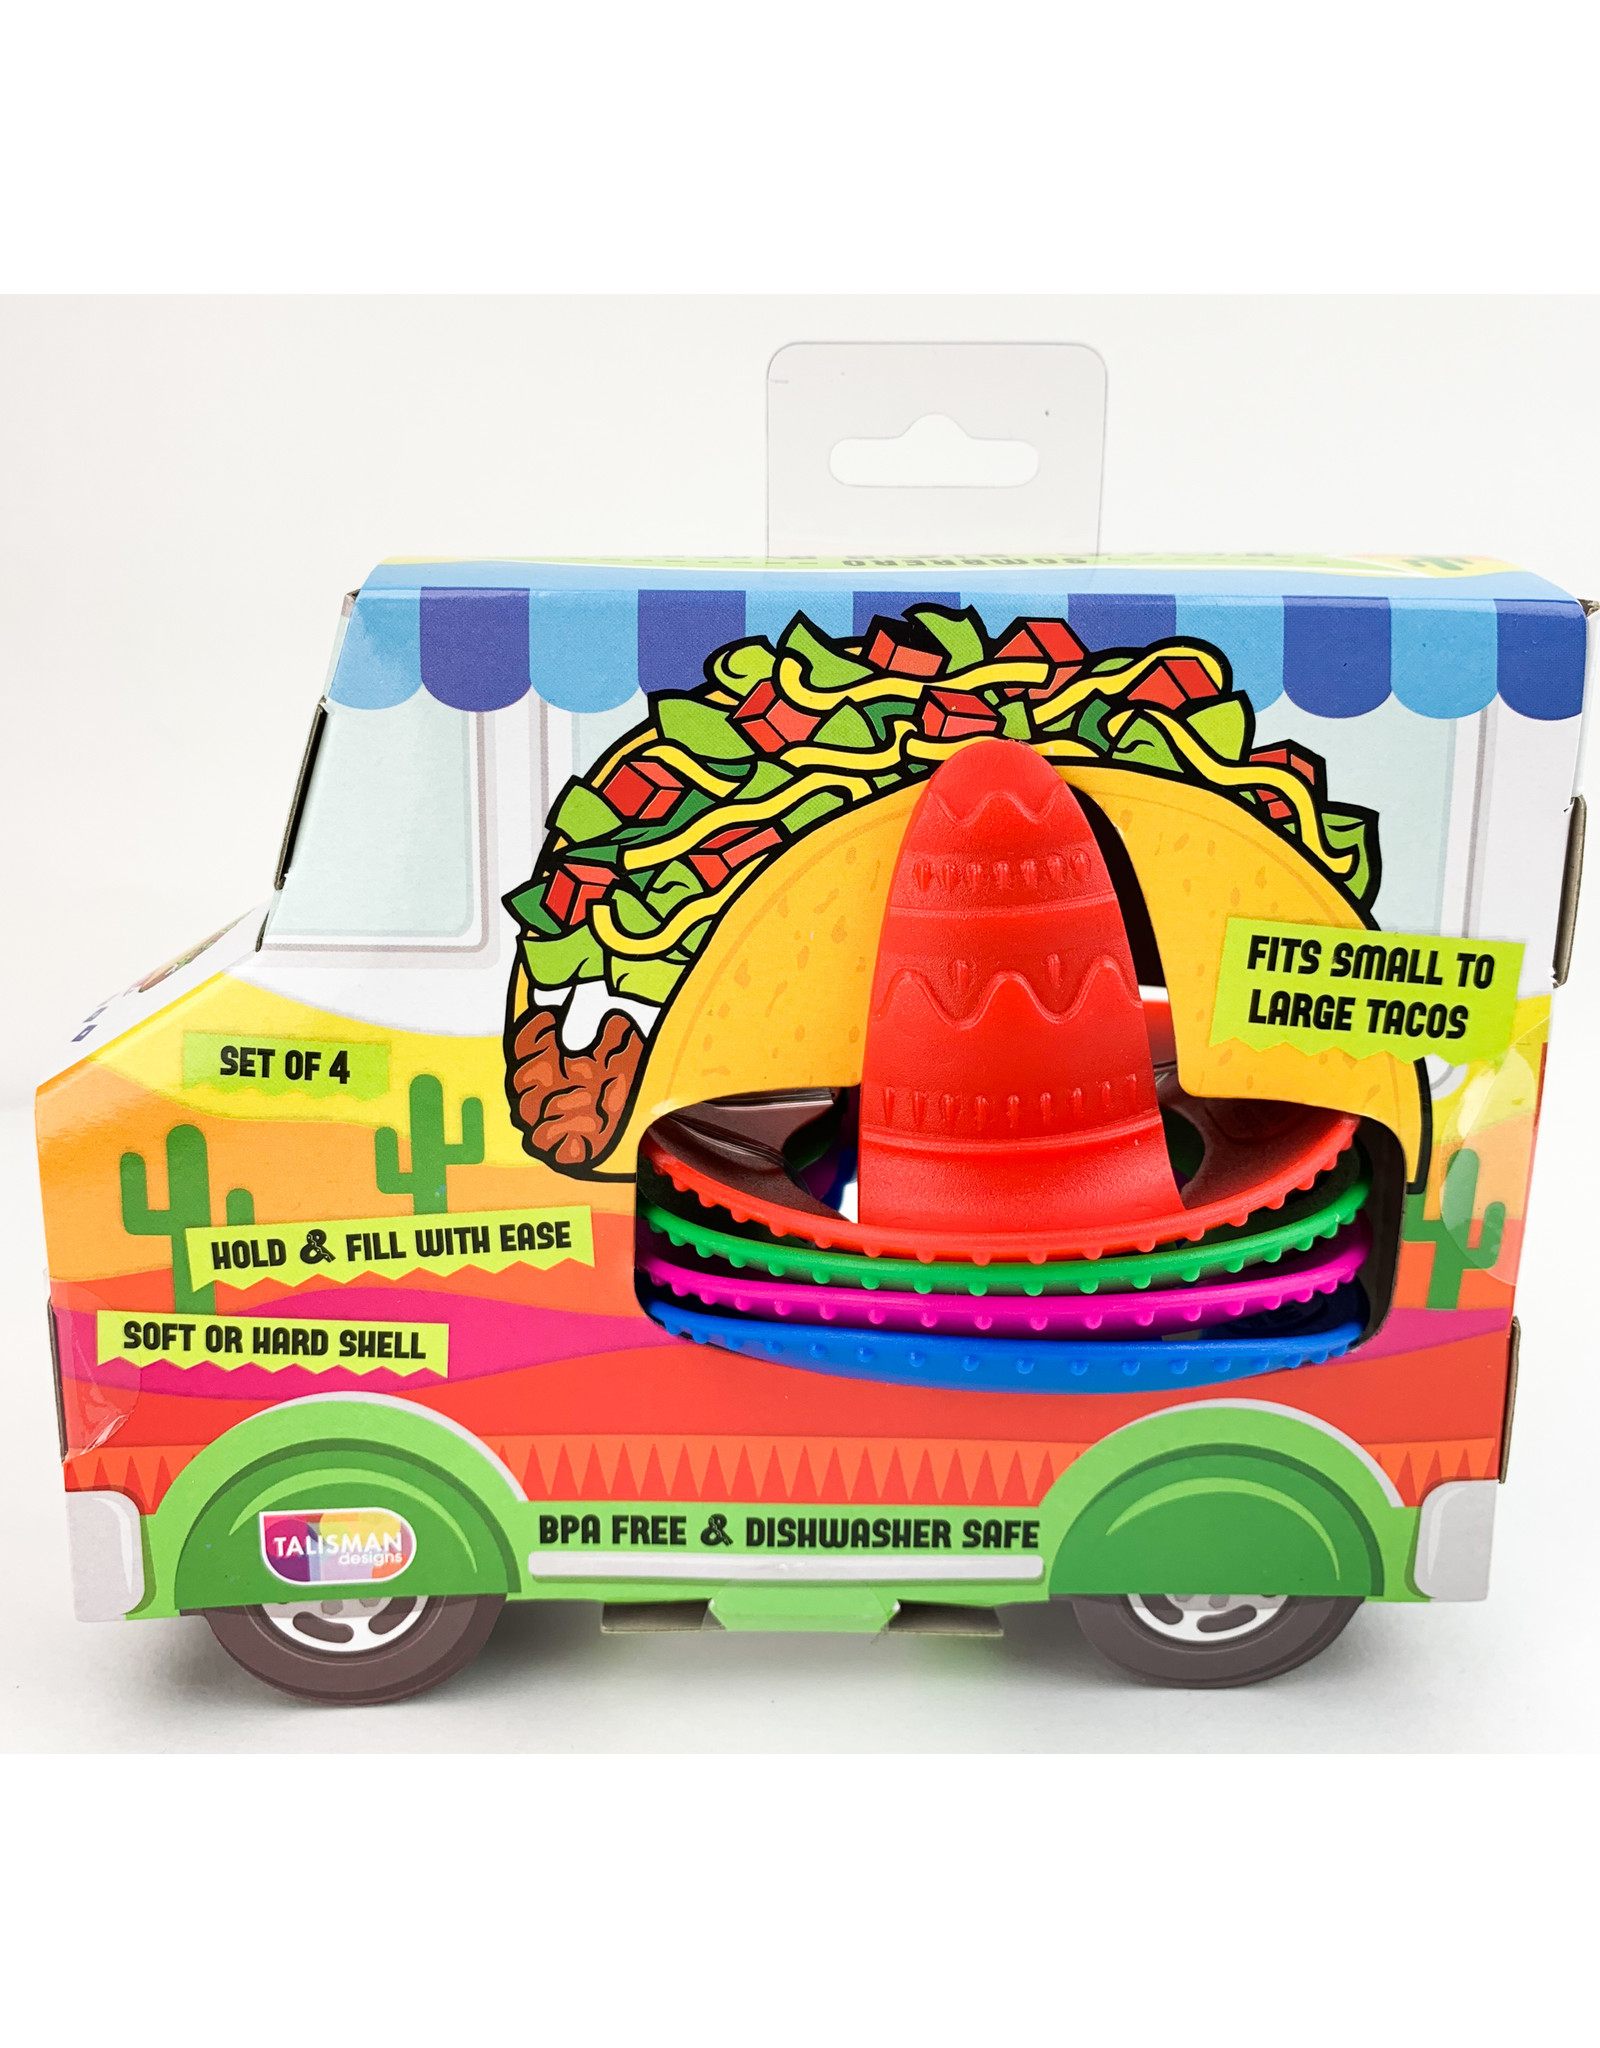 Talisman Sombrero Taco holder